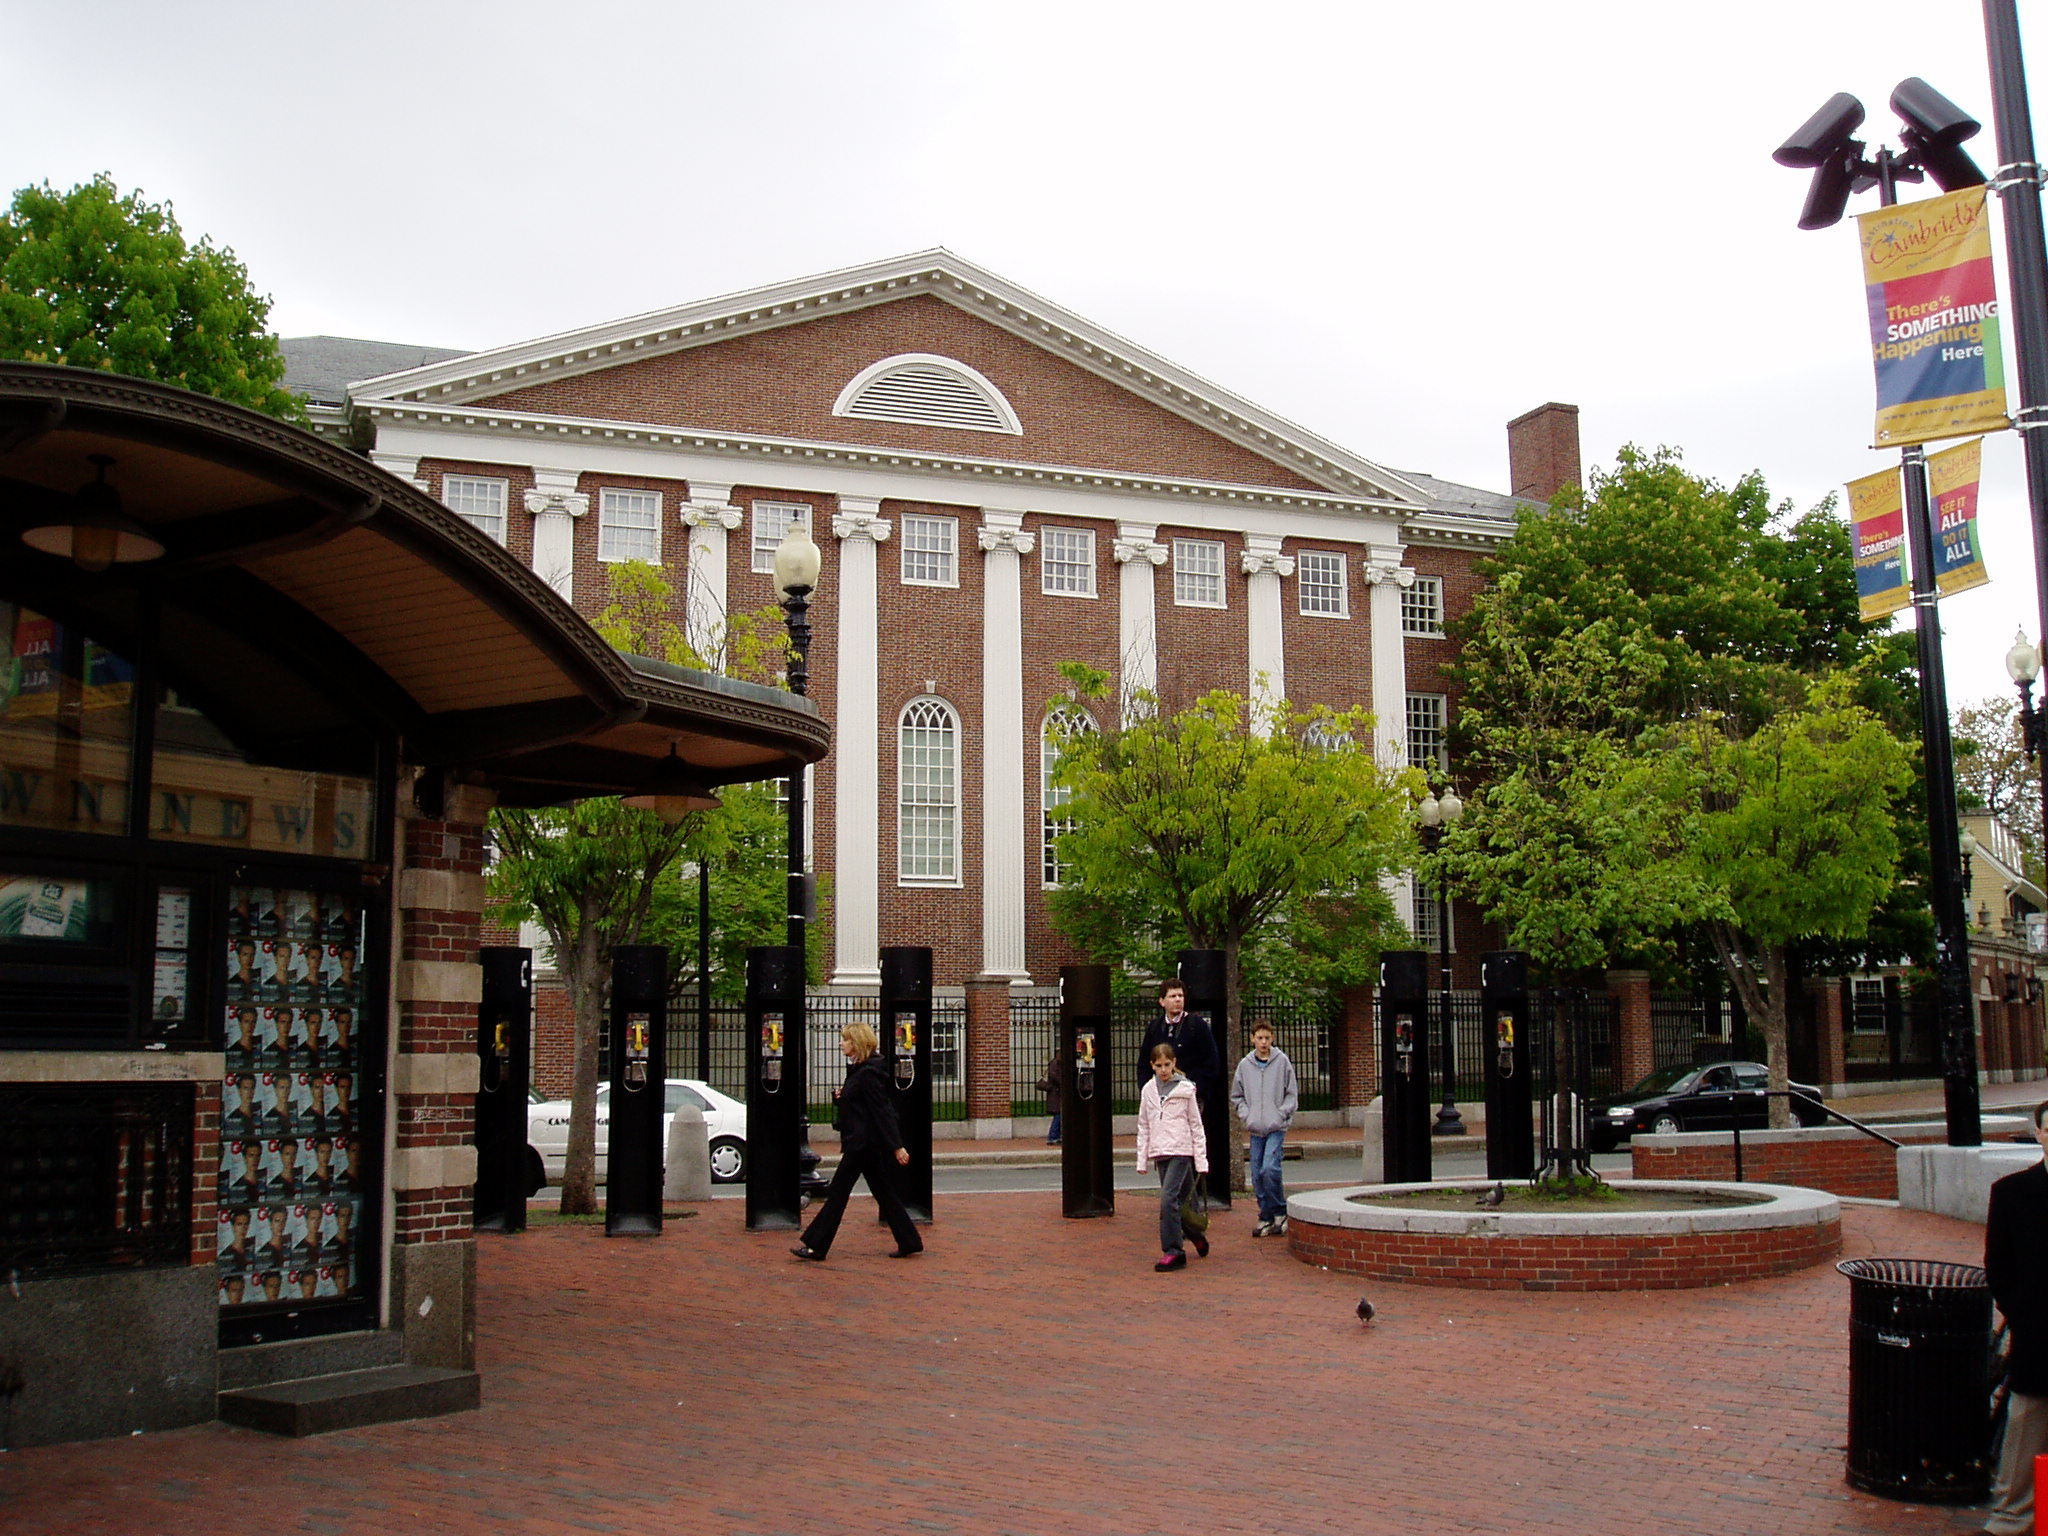 File:Cambridge Harvard Square.JPG - Wikimedia Commons